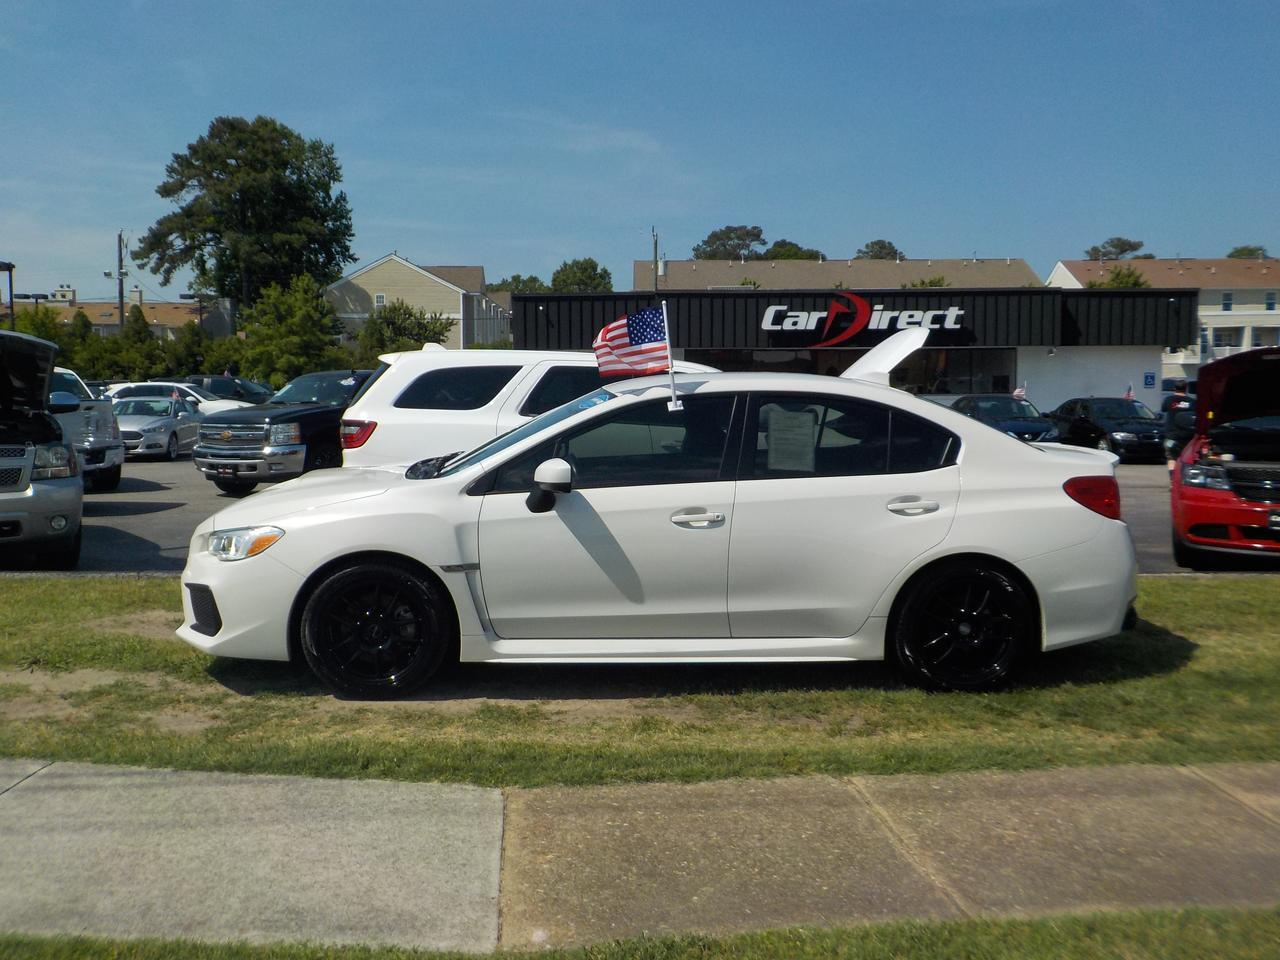 2018 SUBARU WRX 6-SPEED AWD, REAR SPOILER, BACKUP CAMERA, TINTED WINDOWS, BLUETOOTH WIRELESS, AUXILIARY PORT! Virginia Beach VA